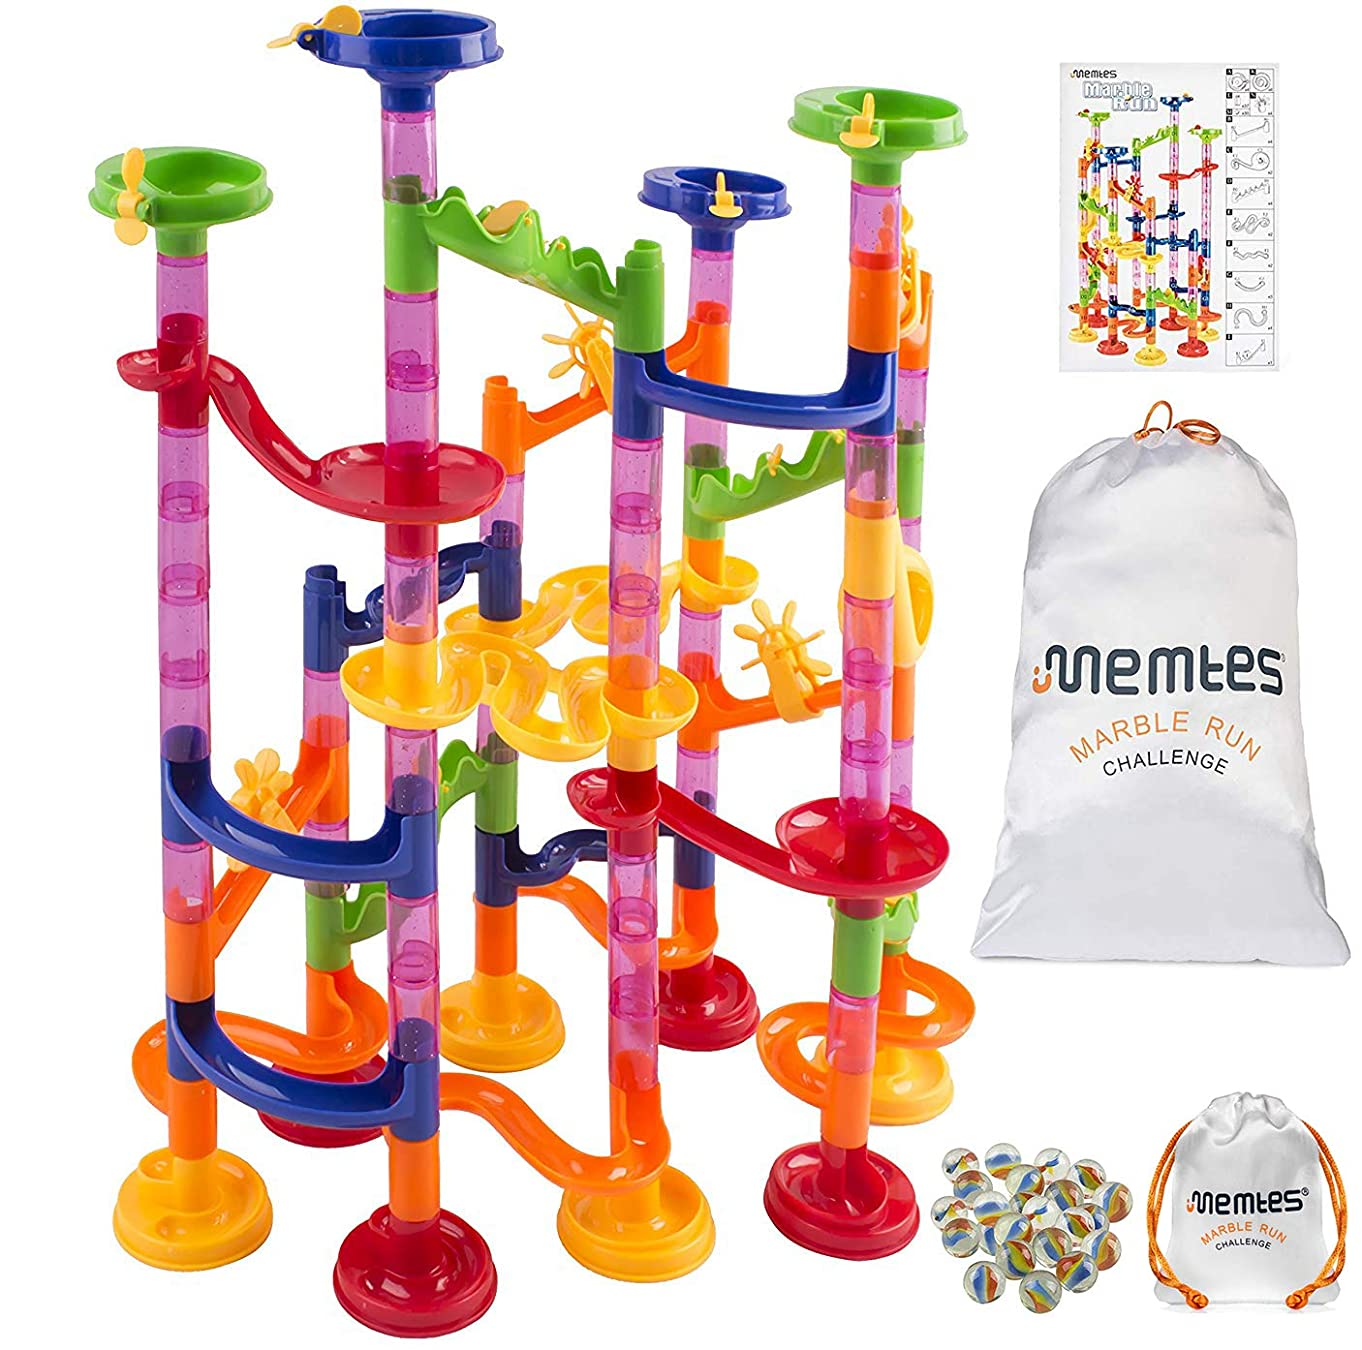 Memtes Marble Run Toy Race Coaster 105 Piece Set, Educational Construction Maze Building Blocks Learning Toy, with Silk Bag